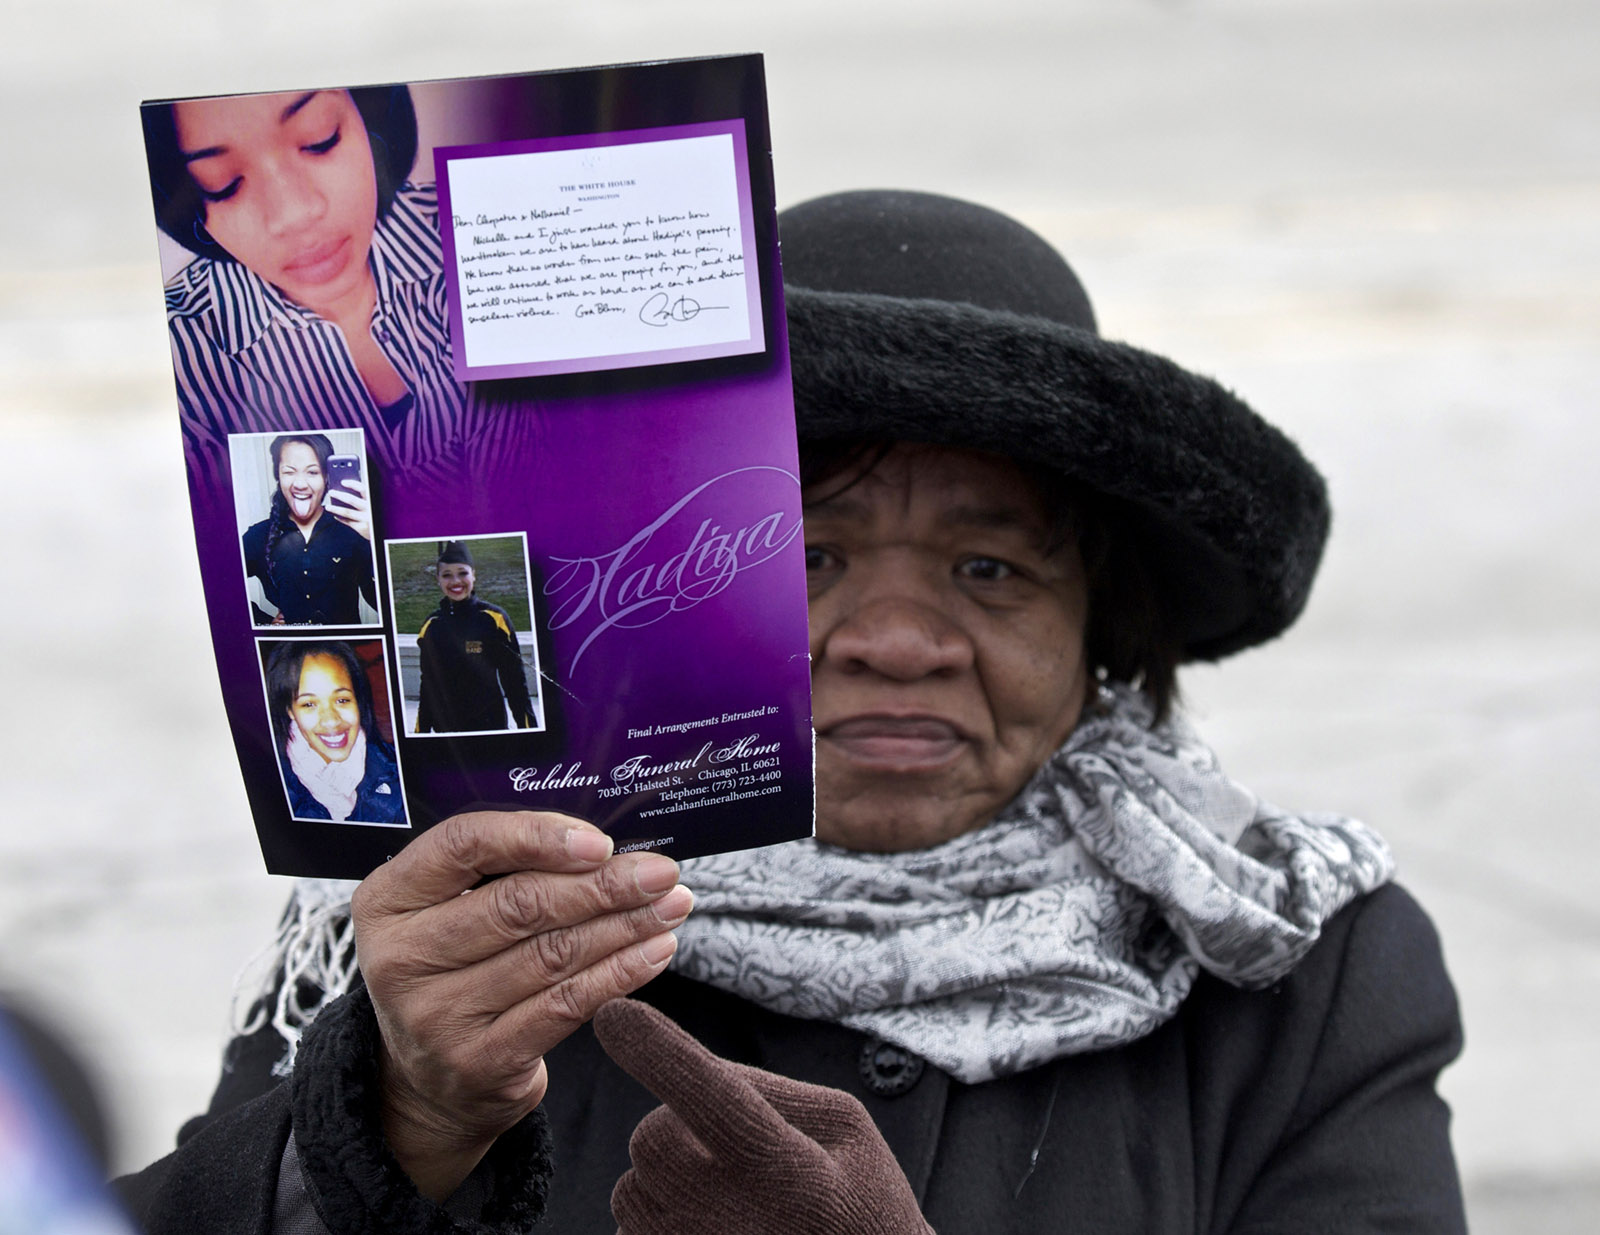 A mourner at the funeral of Hadiya Pendleton, a fifteen-year-old who was fatally shot in a Chicago park